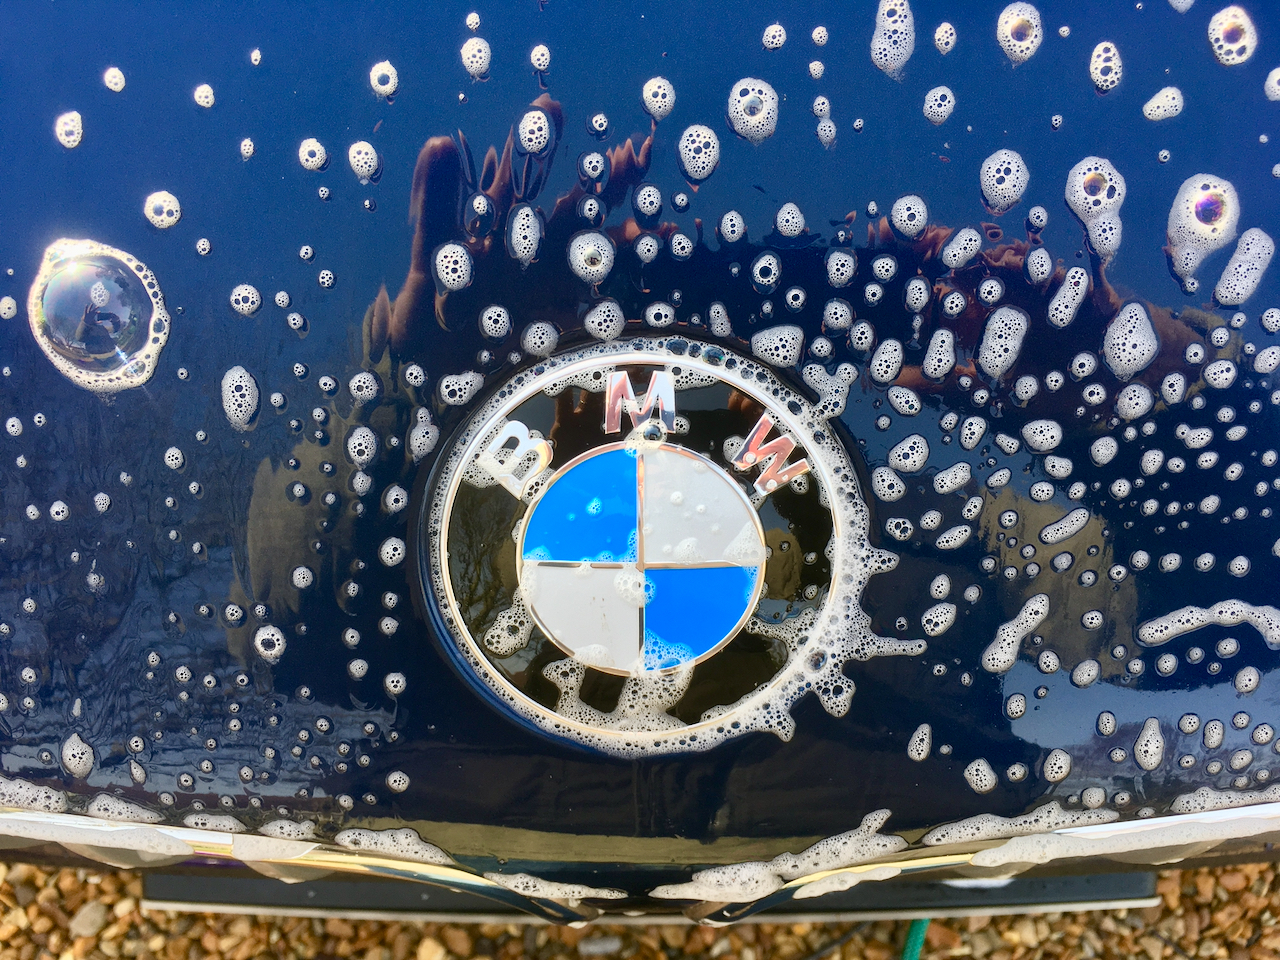 BMW car bonnet with soap suds